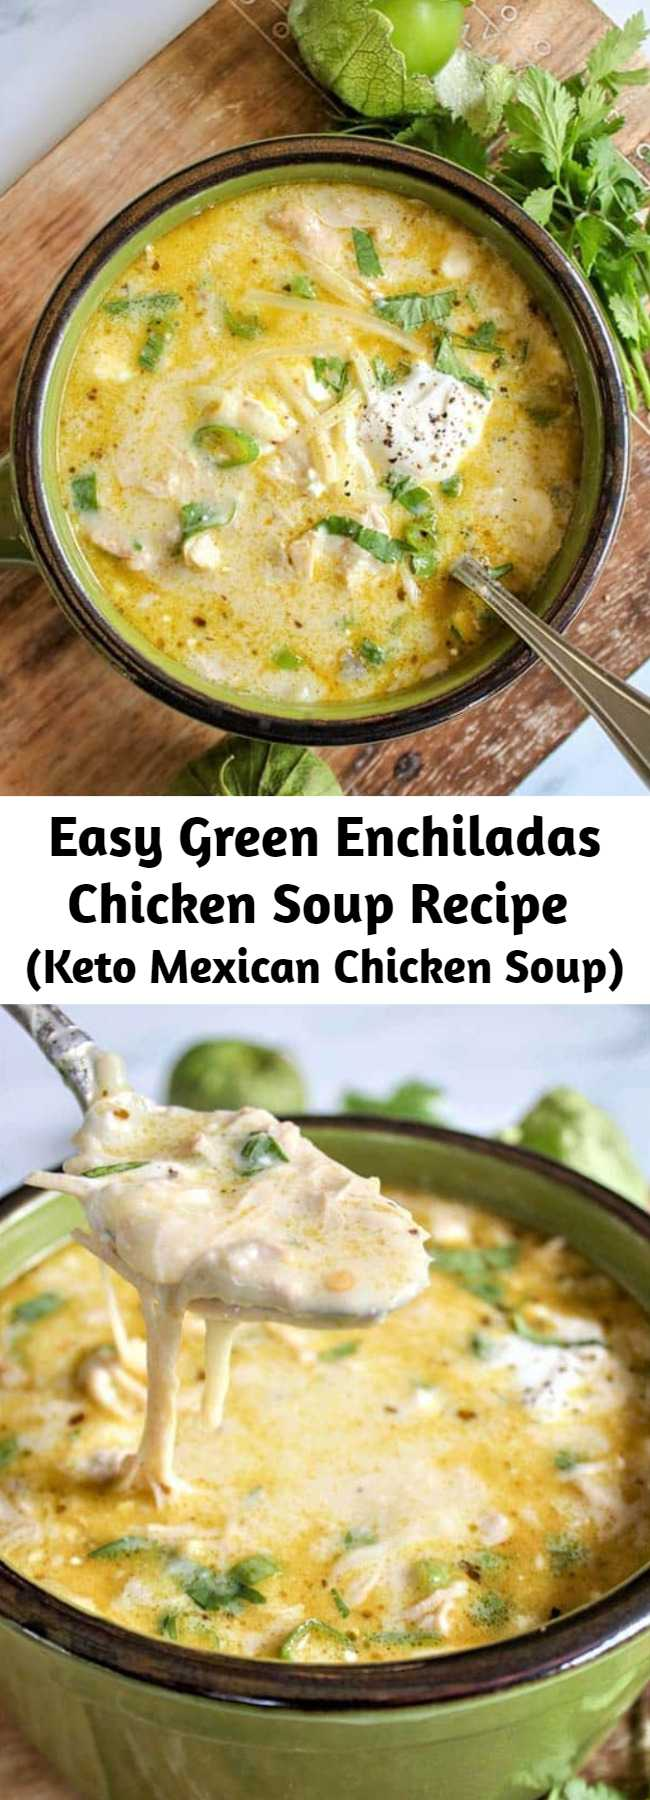 Easy Green Enchiladas Chicken Soup Recipe (Keto Mexican Chicken Soup) - Green Enchiladas Chicken Soup, with a creamy broth of green enchiladas sauce, salsa verde, cheeses, and tender shredded chicken, you can't go wrong with this recipe. Perfect for those busy nights! This Mexican soup recipe is keto and low carb friendly which will make everyone happy! This recipe can be made on a stovetop or in an Instant Pot. #keto #mexican #soup #slowcooker #crockpot #lowcarb #sugarfree #instantpot